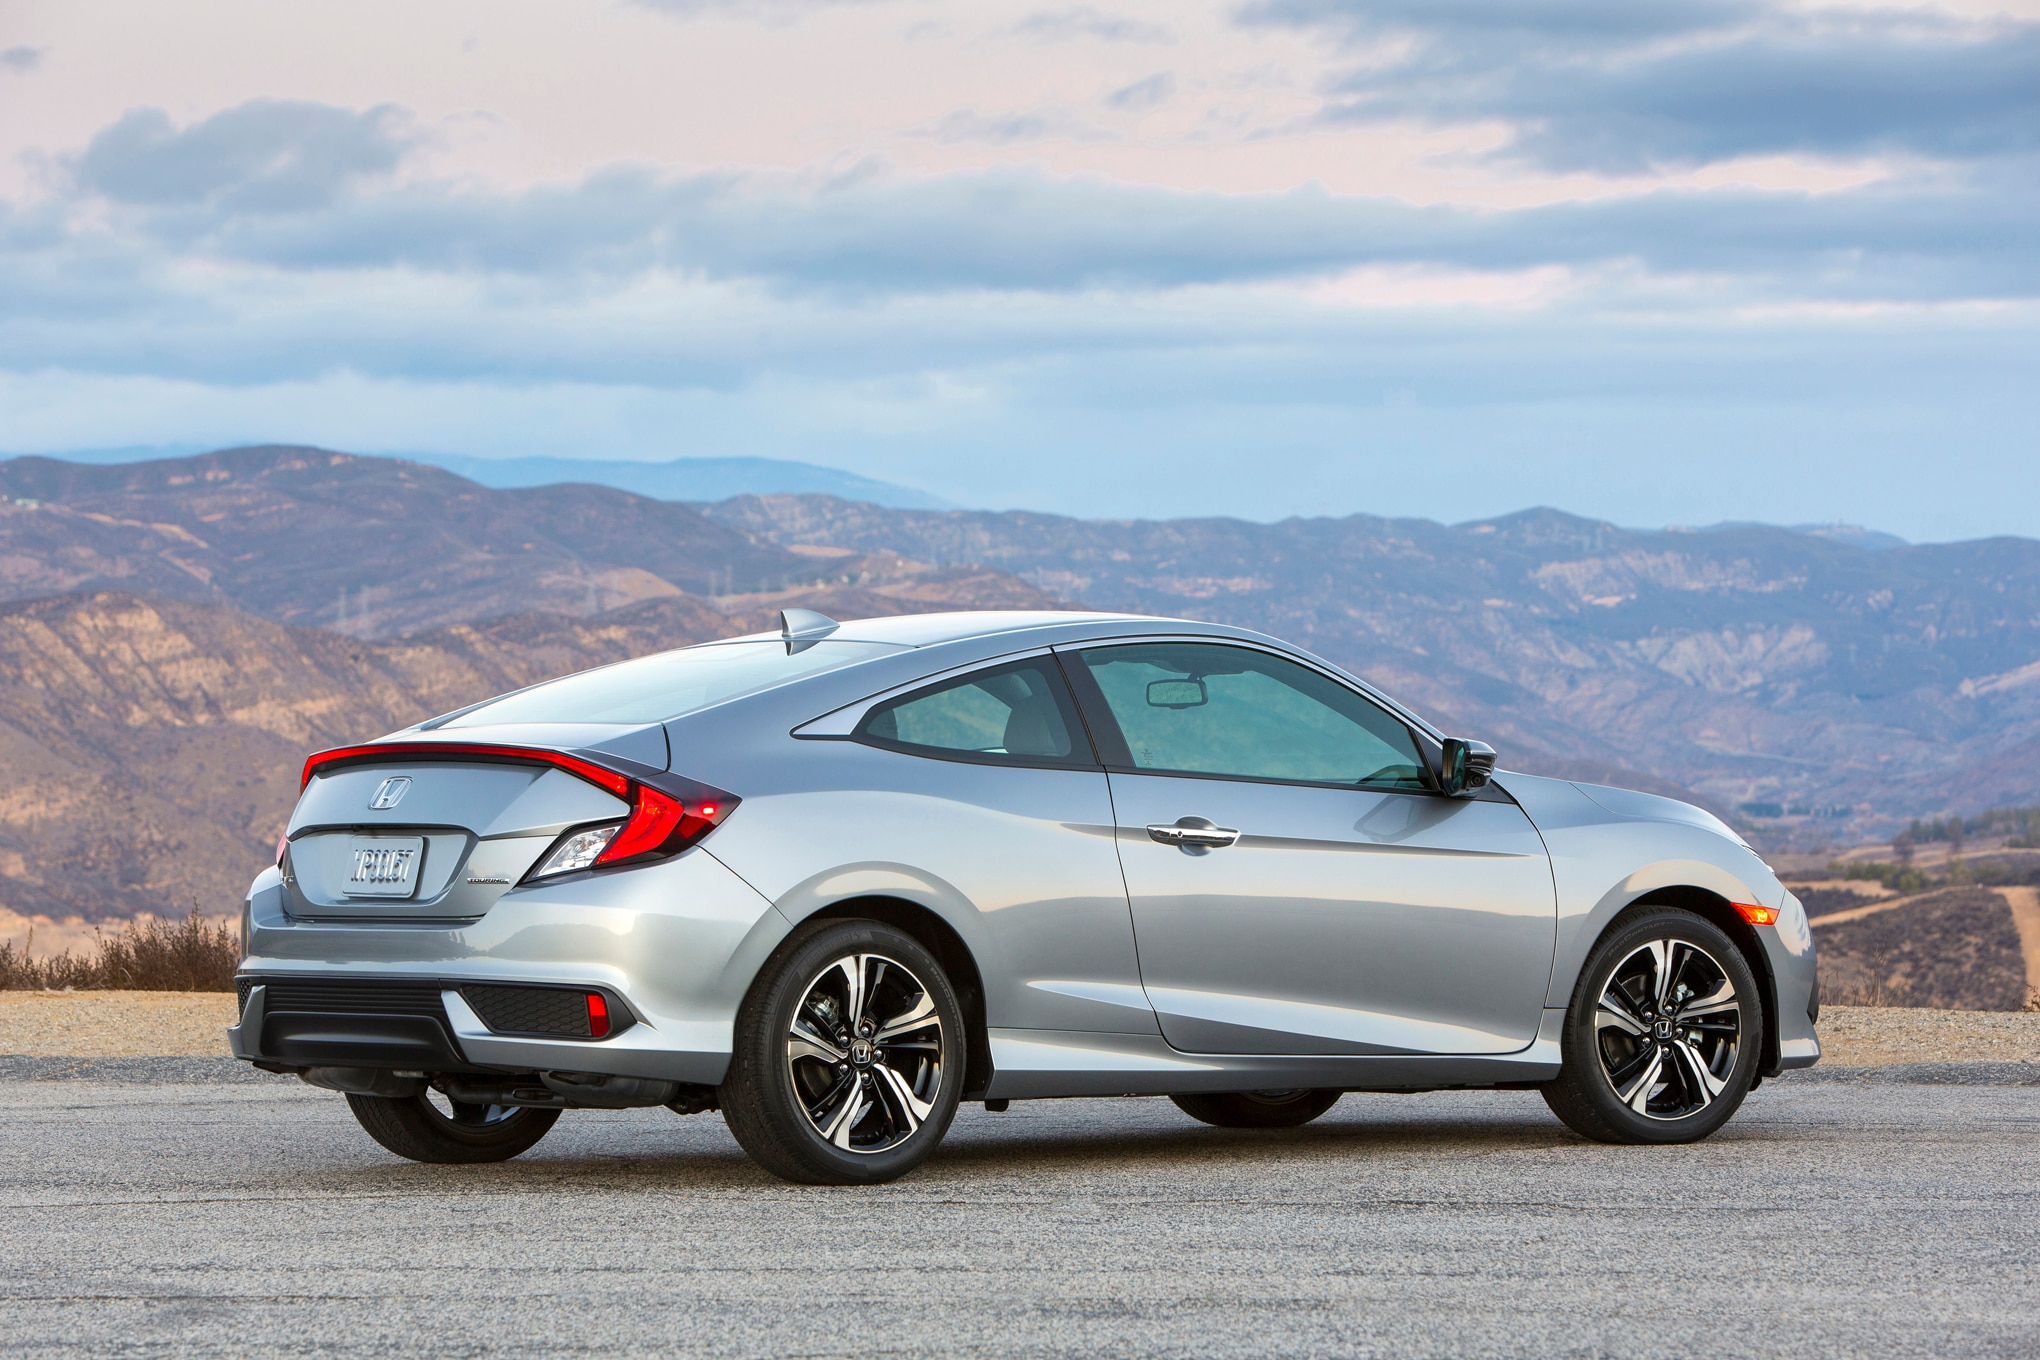 Honda Civic Coupe For Sale >> 2016 Honda Civic Coupe Touring One Week Review | Automobile Magazine